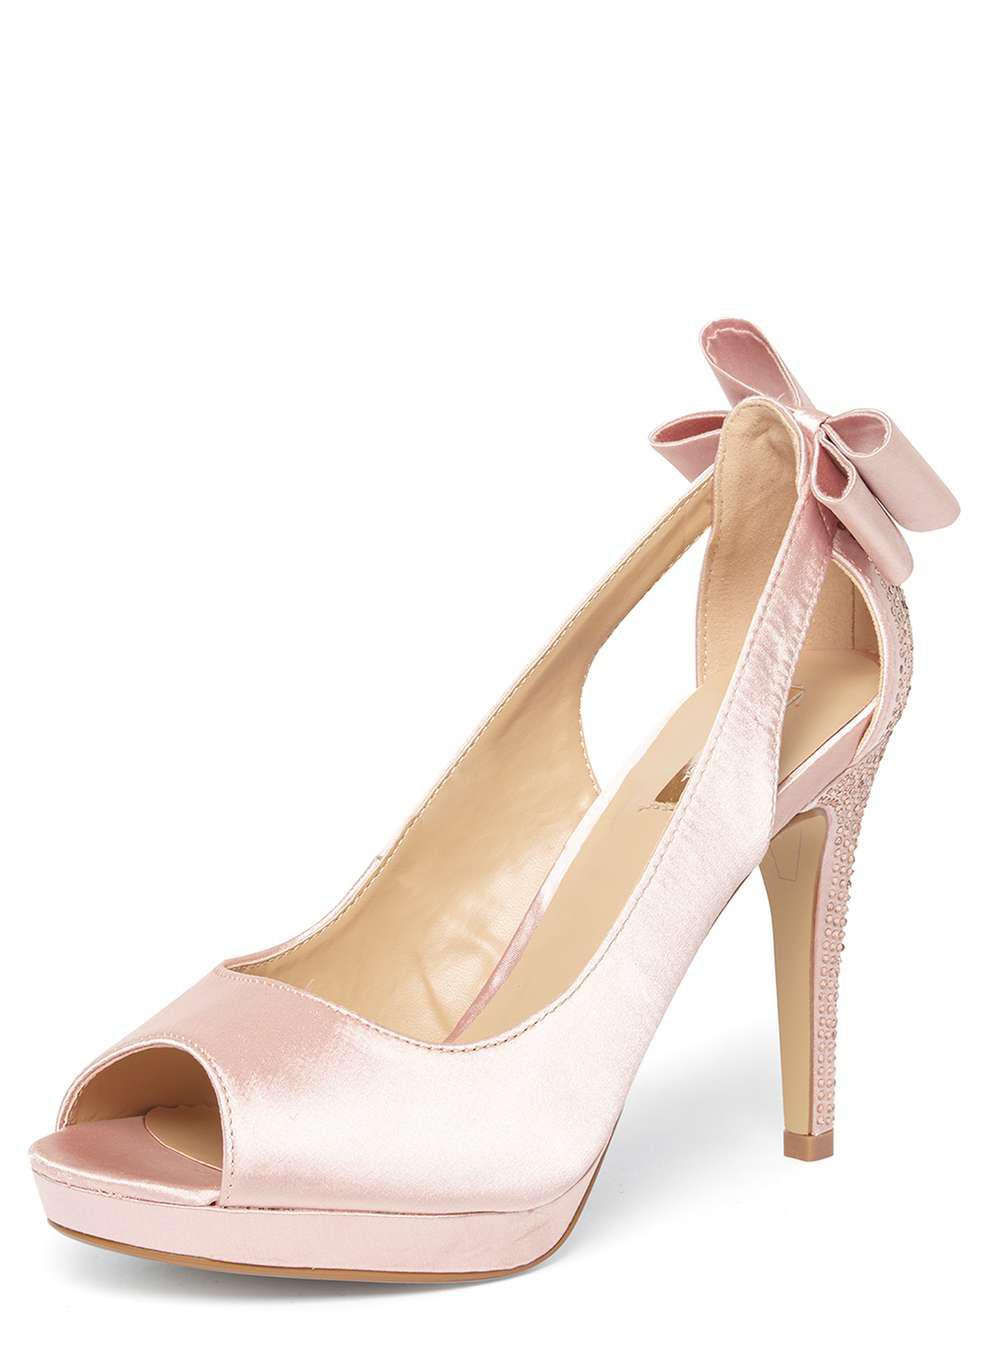 6e1beb42f9a Dorothy Perkins Pink Showcase Blush 'ghost' Bow Court Shoes